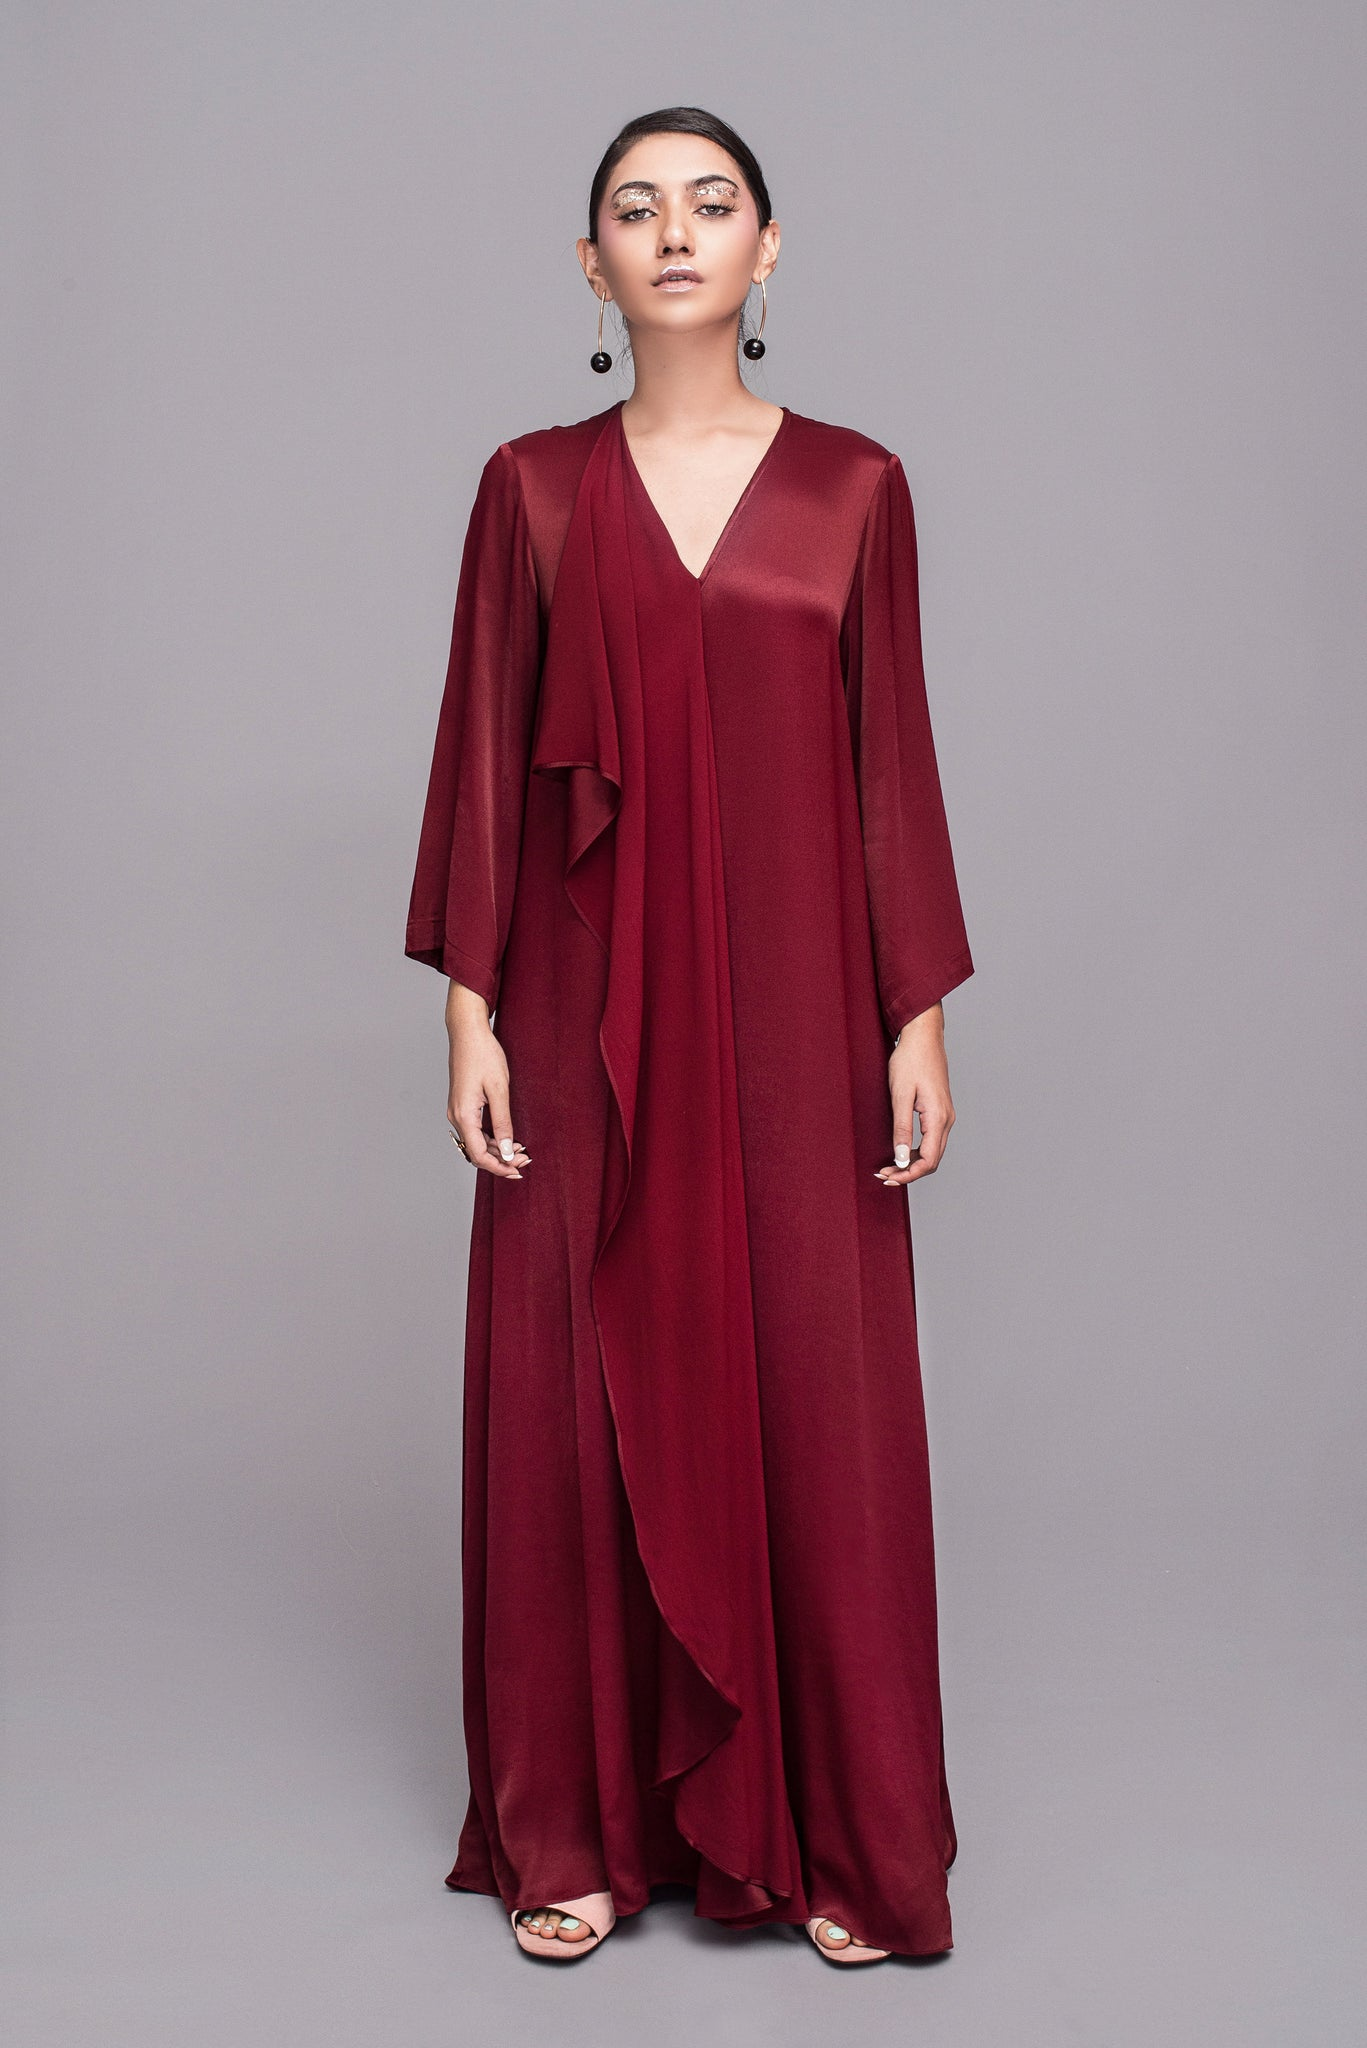 Masam Manis in Maroon